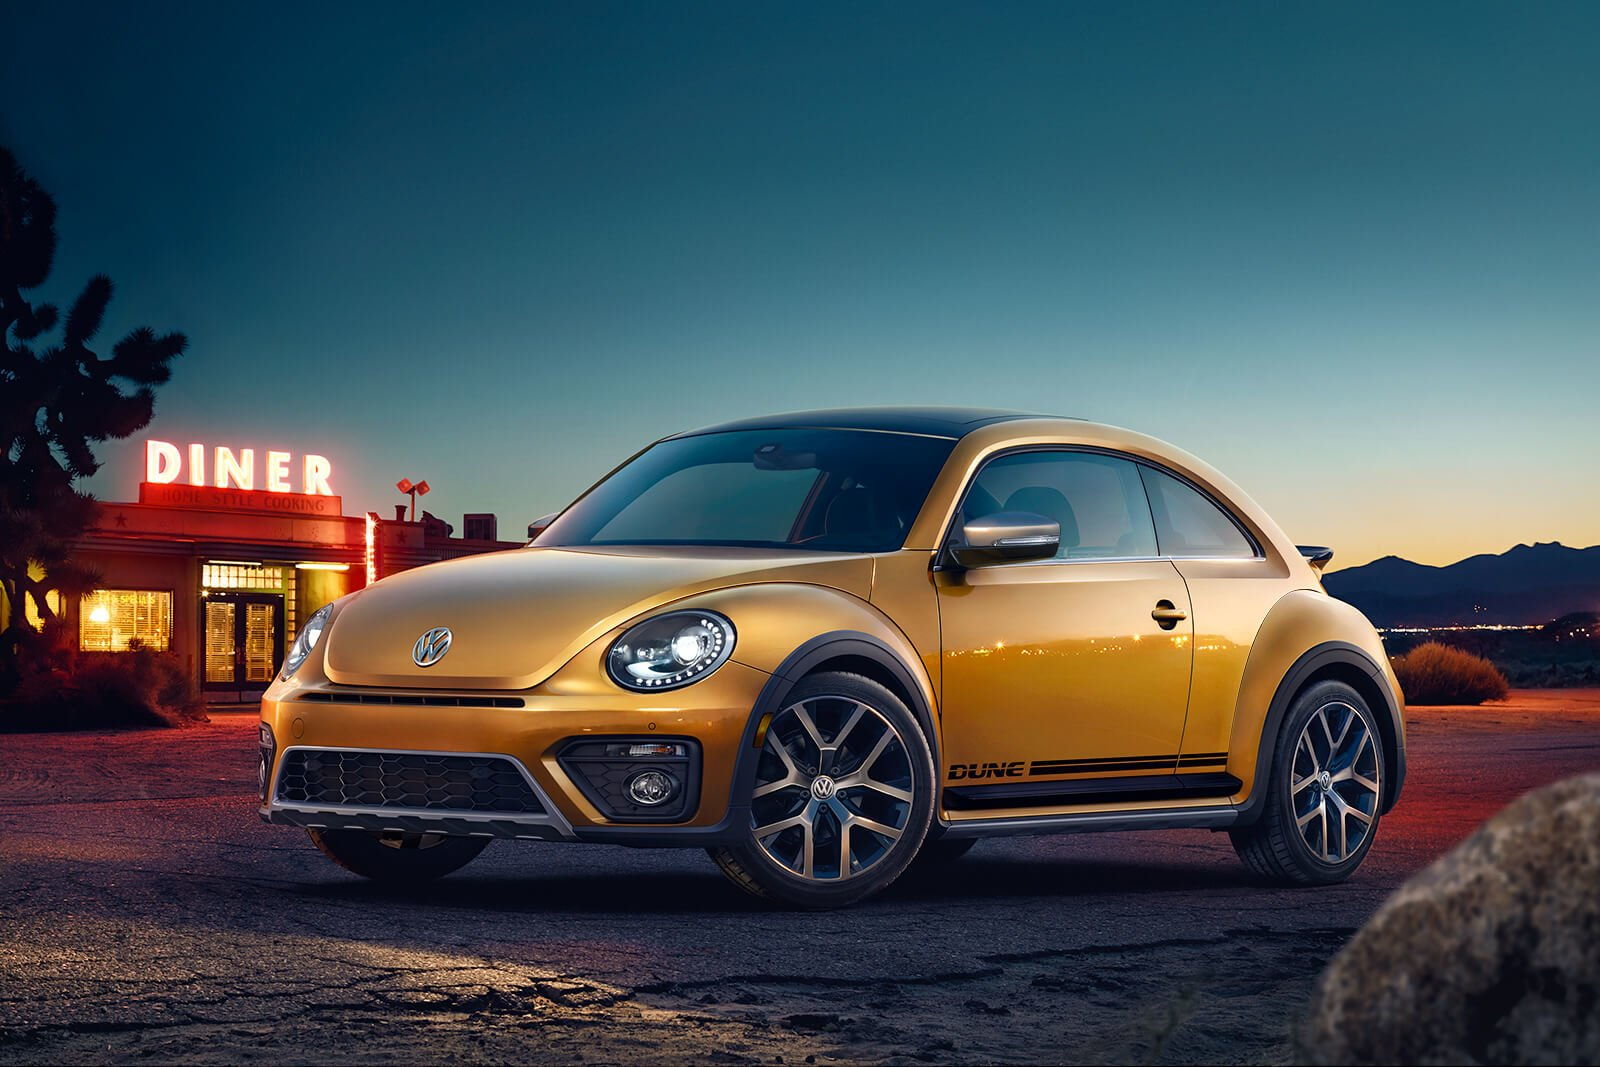 Looking for a finance deal on a used Volkswagen Beetle?